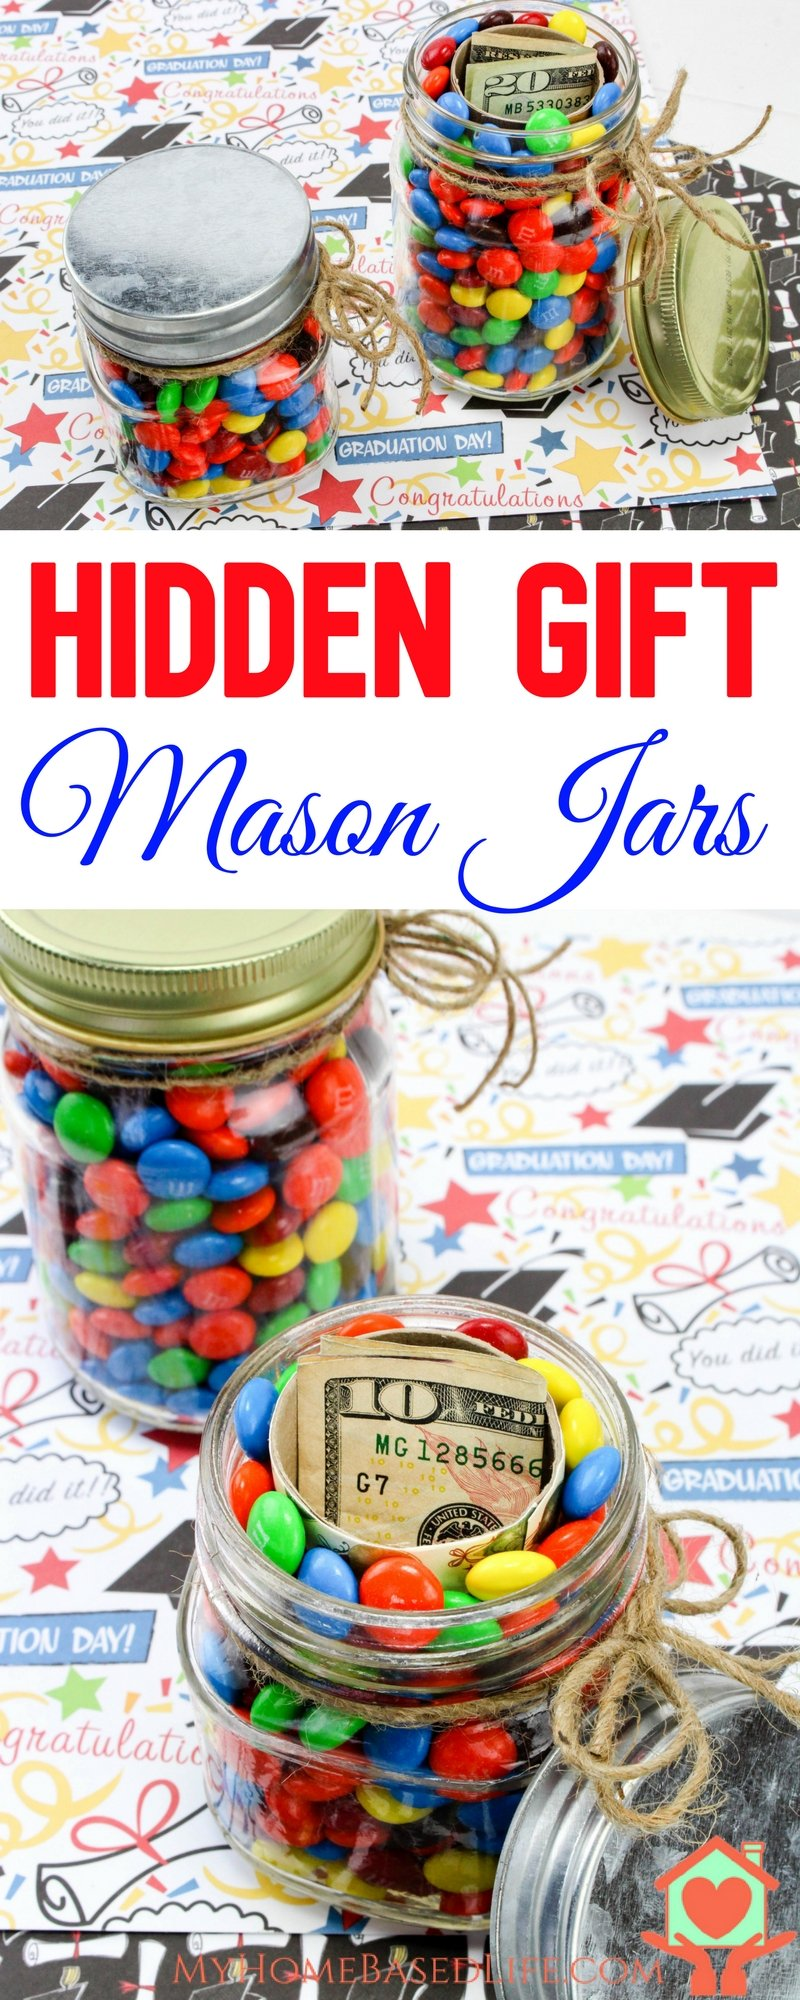 Hidden Gift Jars | Make giving the gift of money a mystery!